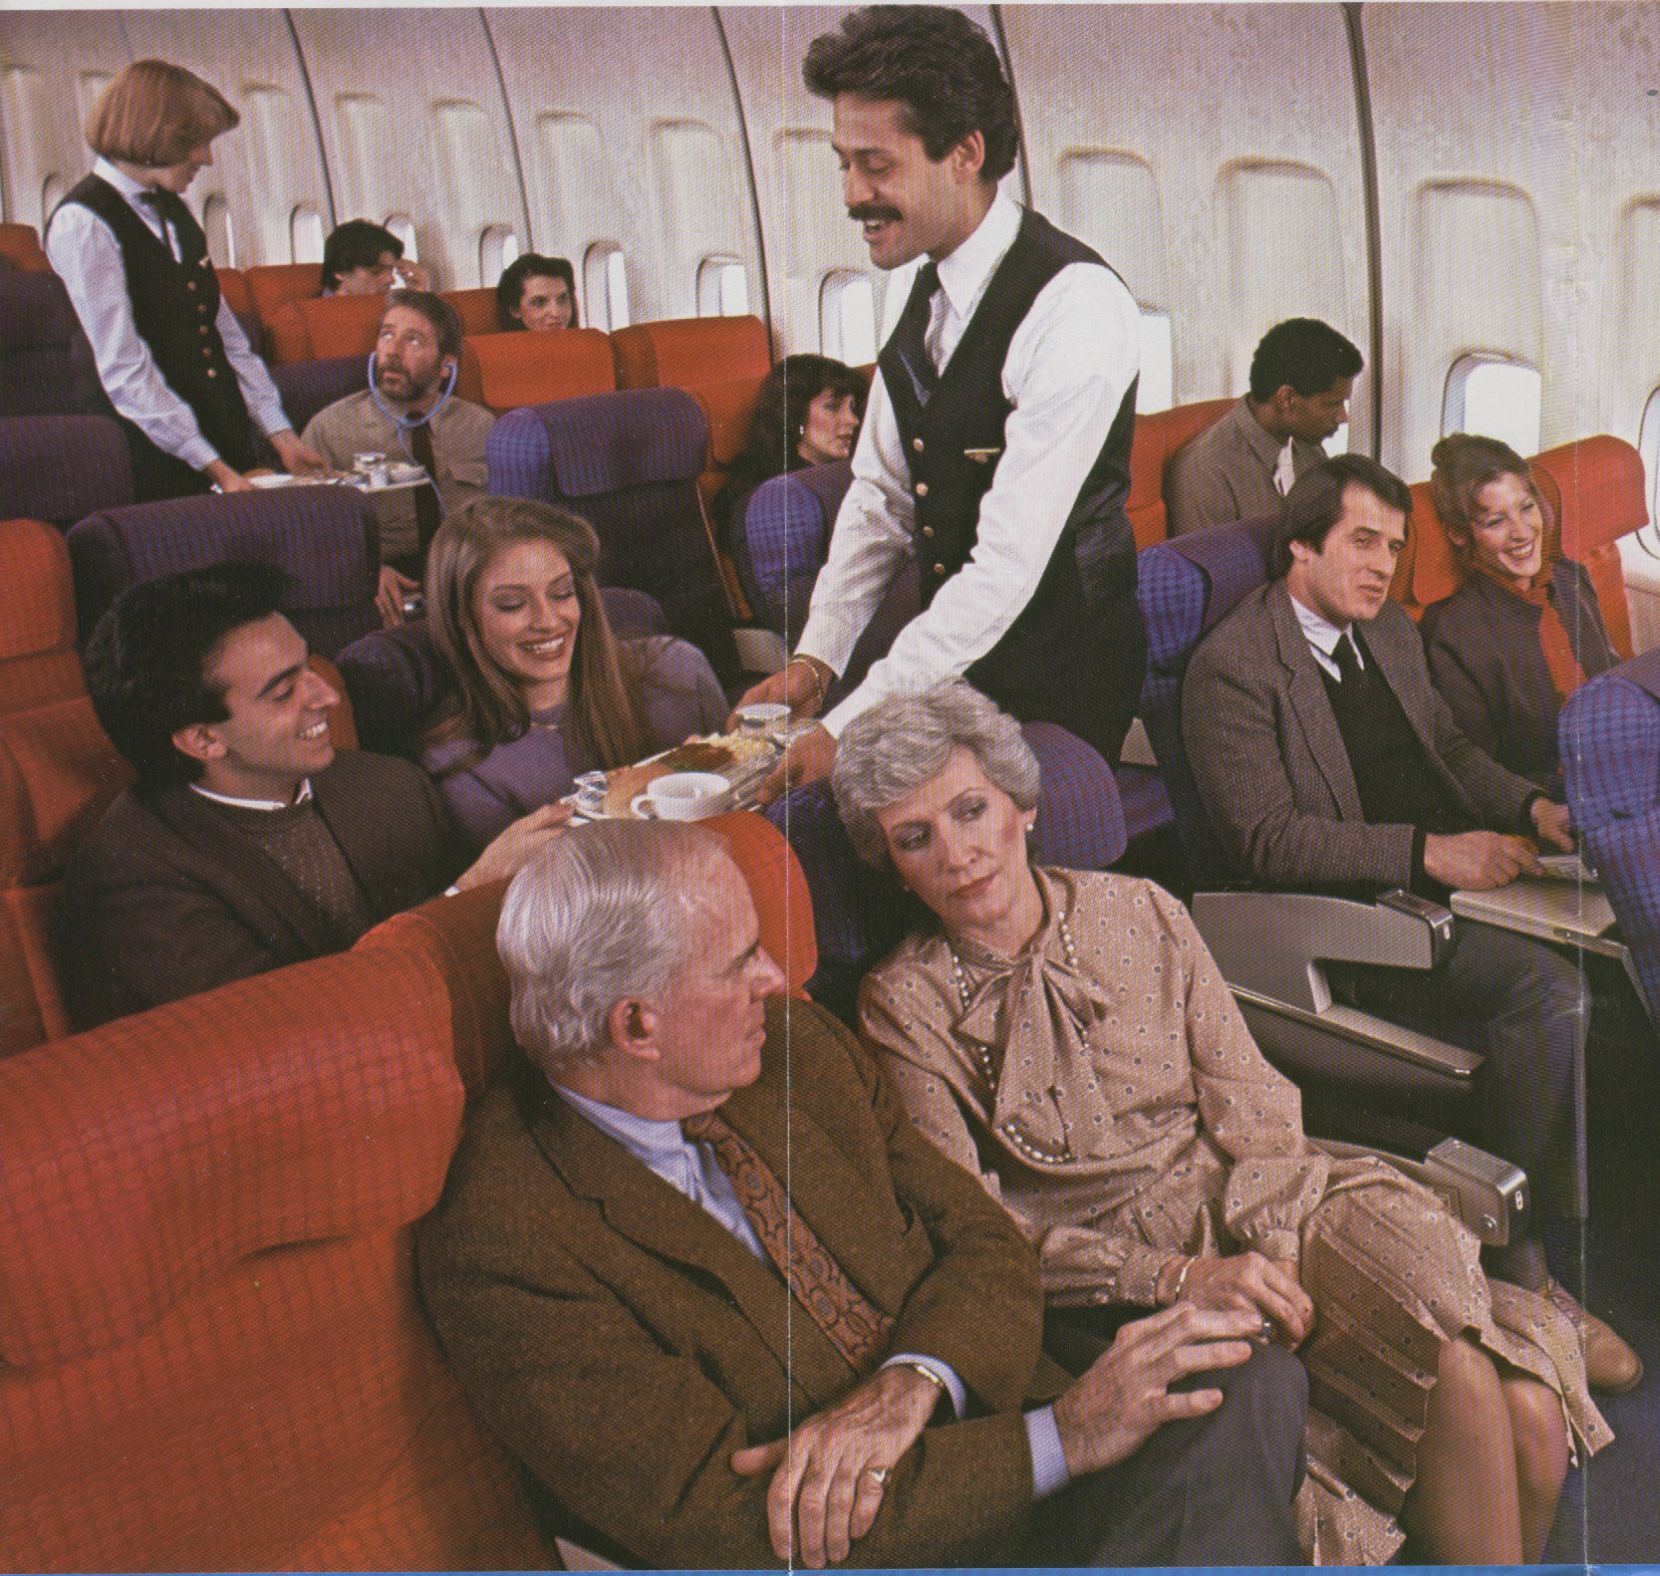 1980s The economy section of a Pan Am 747 during meal service.  The male flight attendant is Carlos Rosalino.